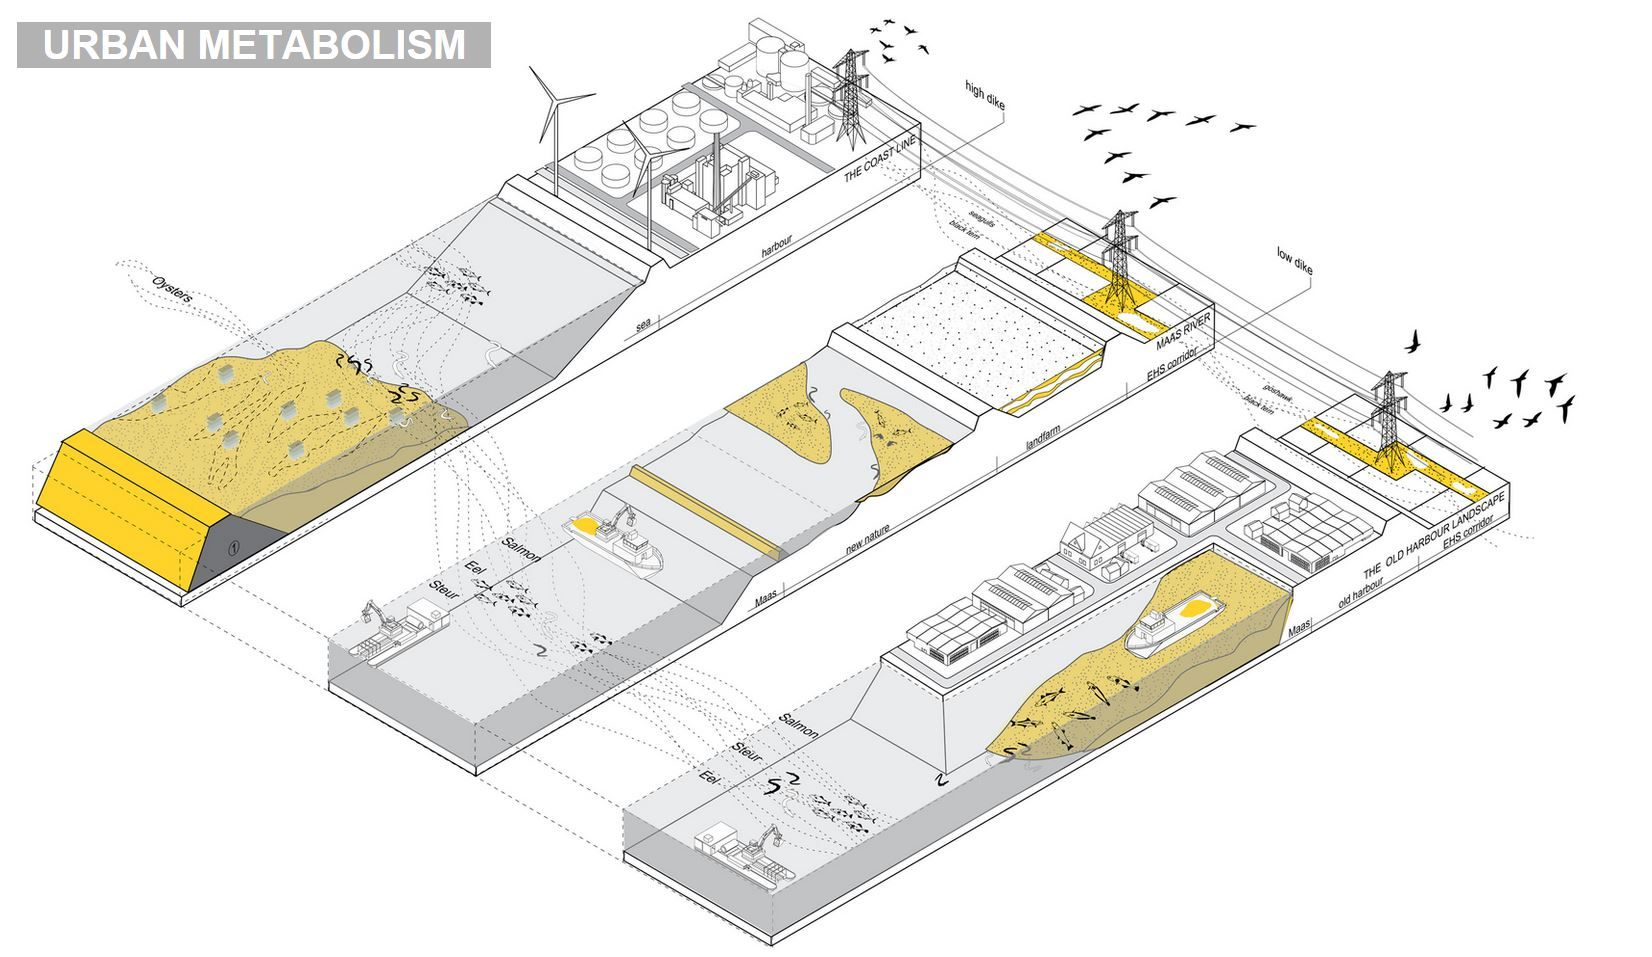 Stupendous Urban Metabolism By Field Operations Archi Graphic Diagram Wiring Digital Resources Funapmognl